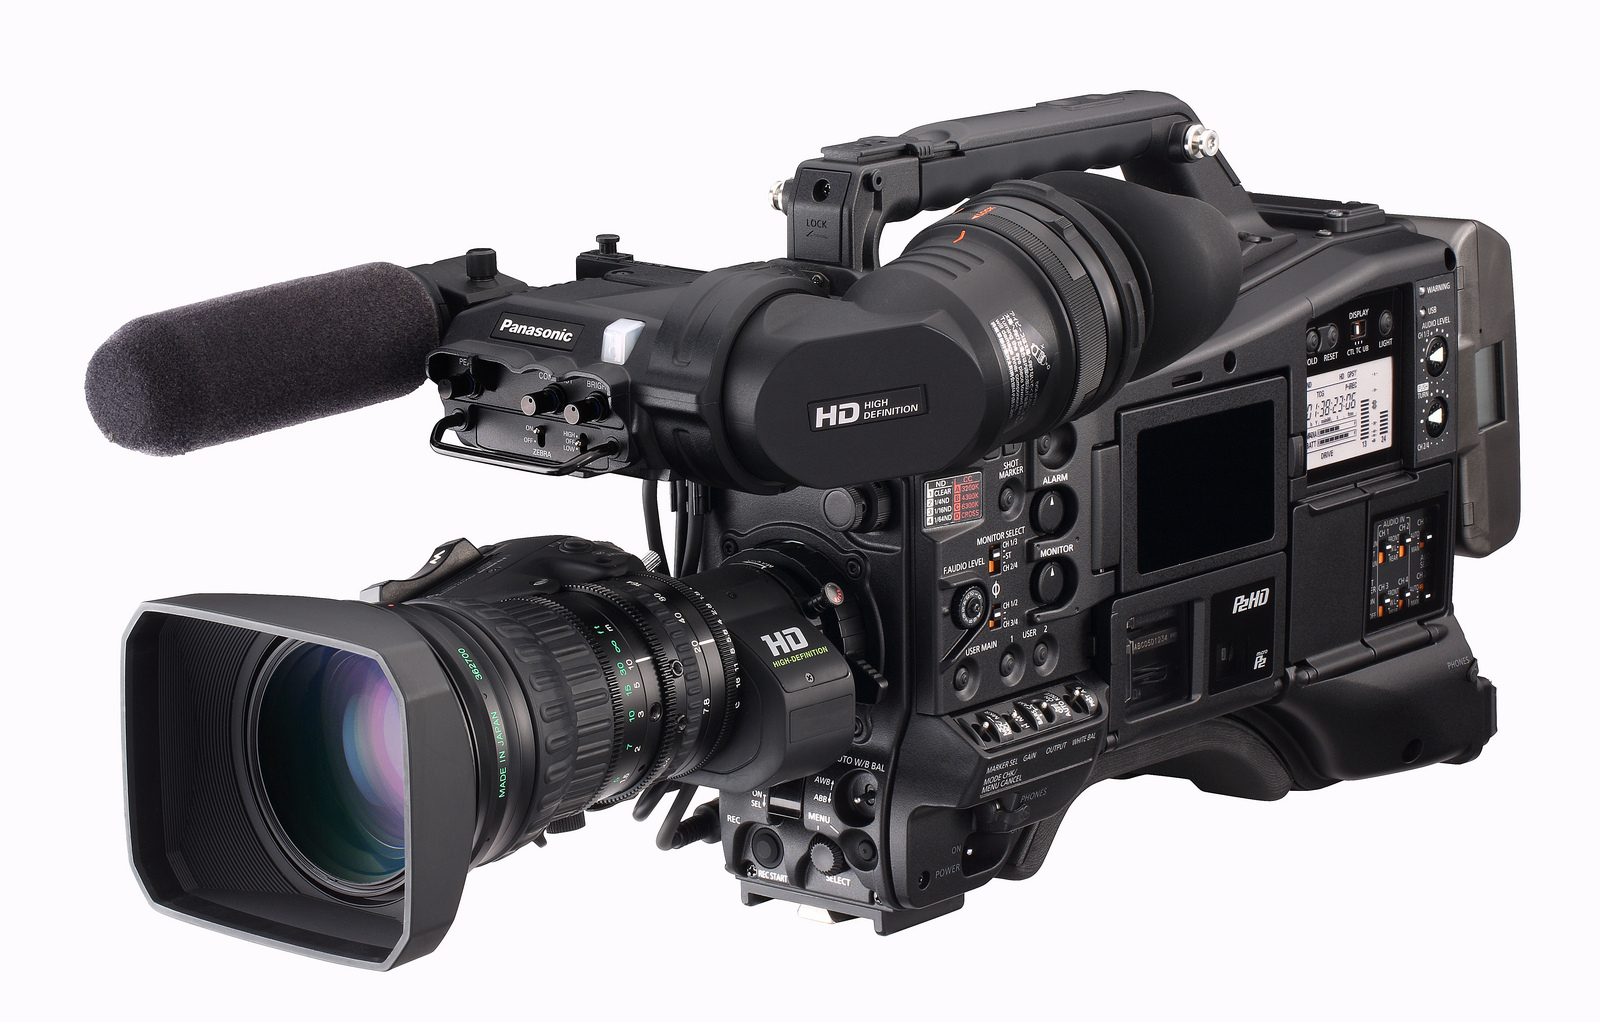 panasonic heads to nab with focus on better hd avc ultra. Black Bedroom Furniture Sets. Home Design Ideas